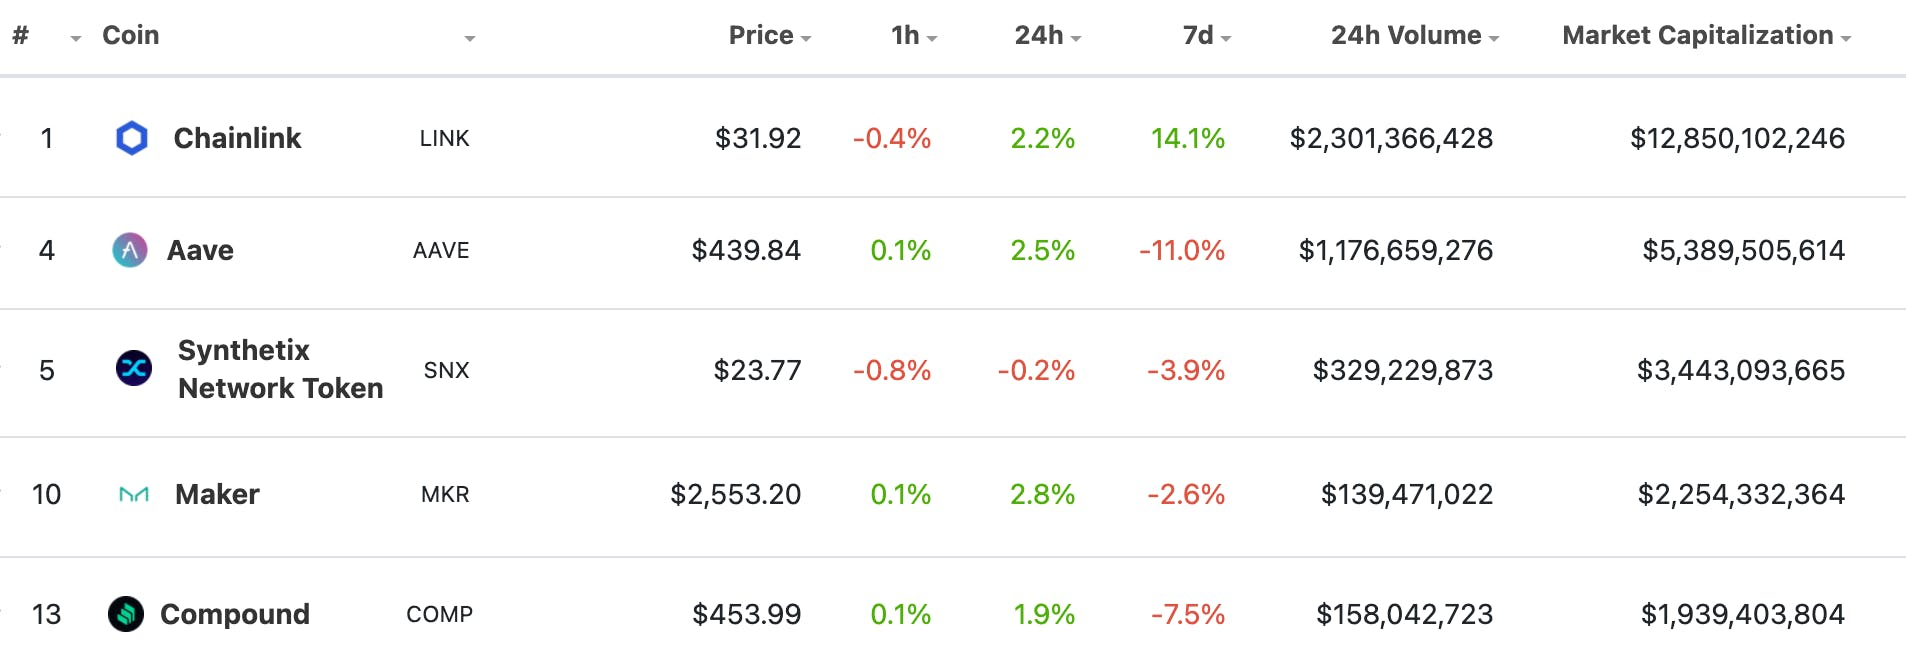 DeFi token market capitalizations